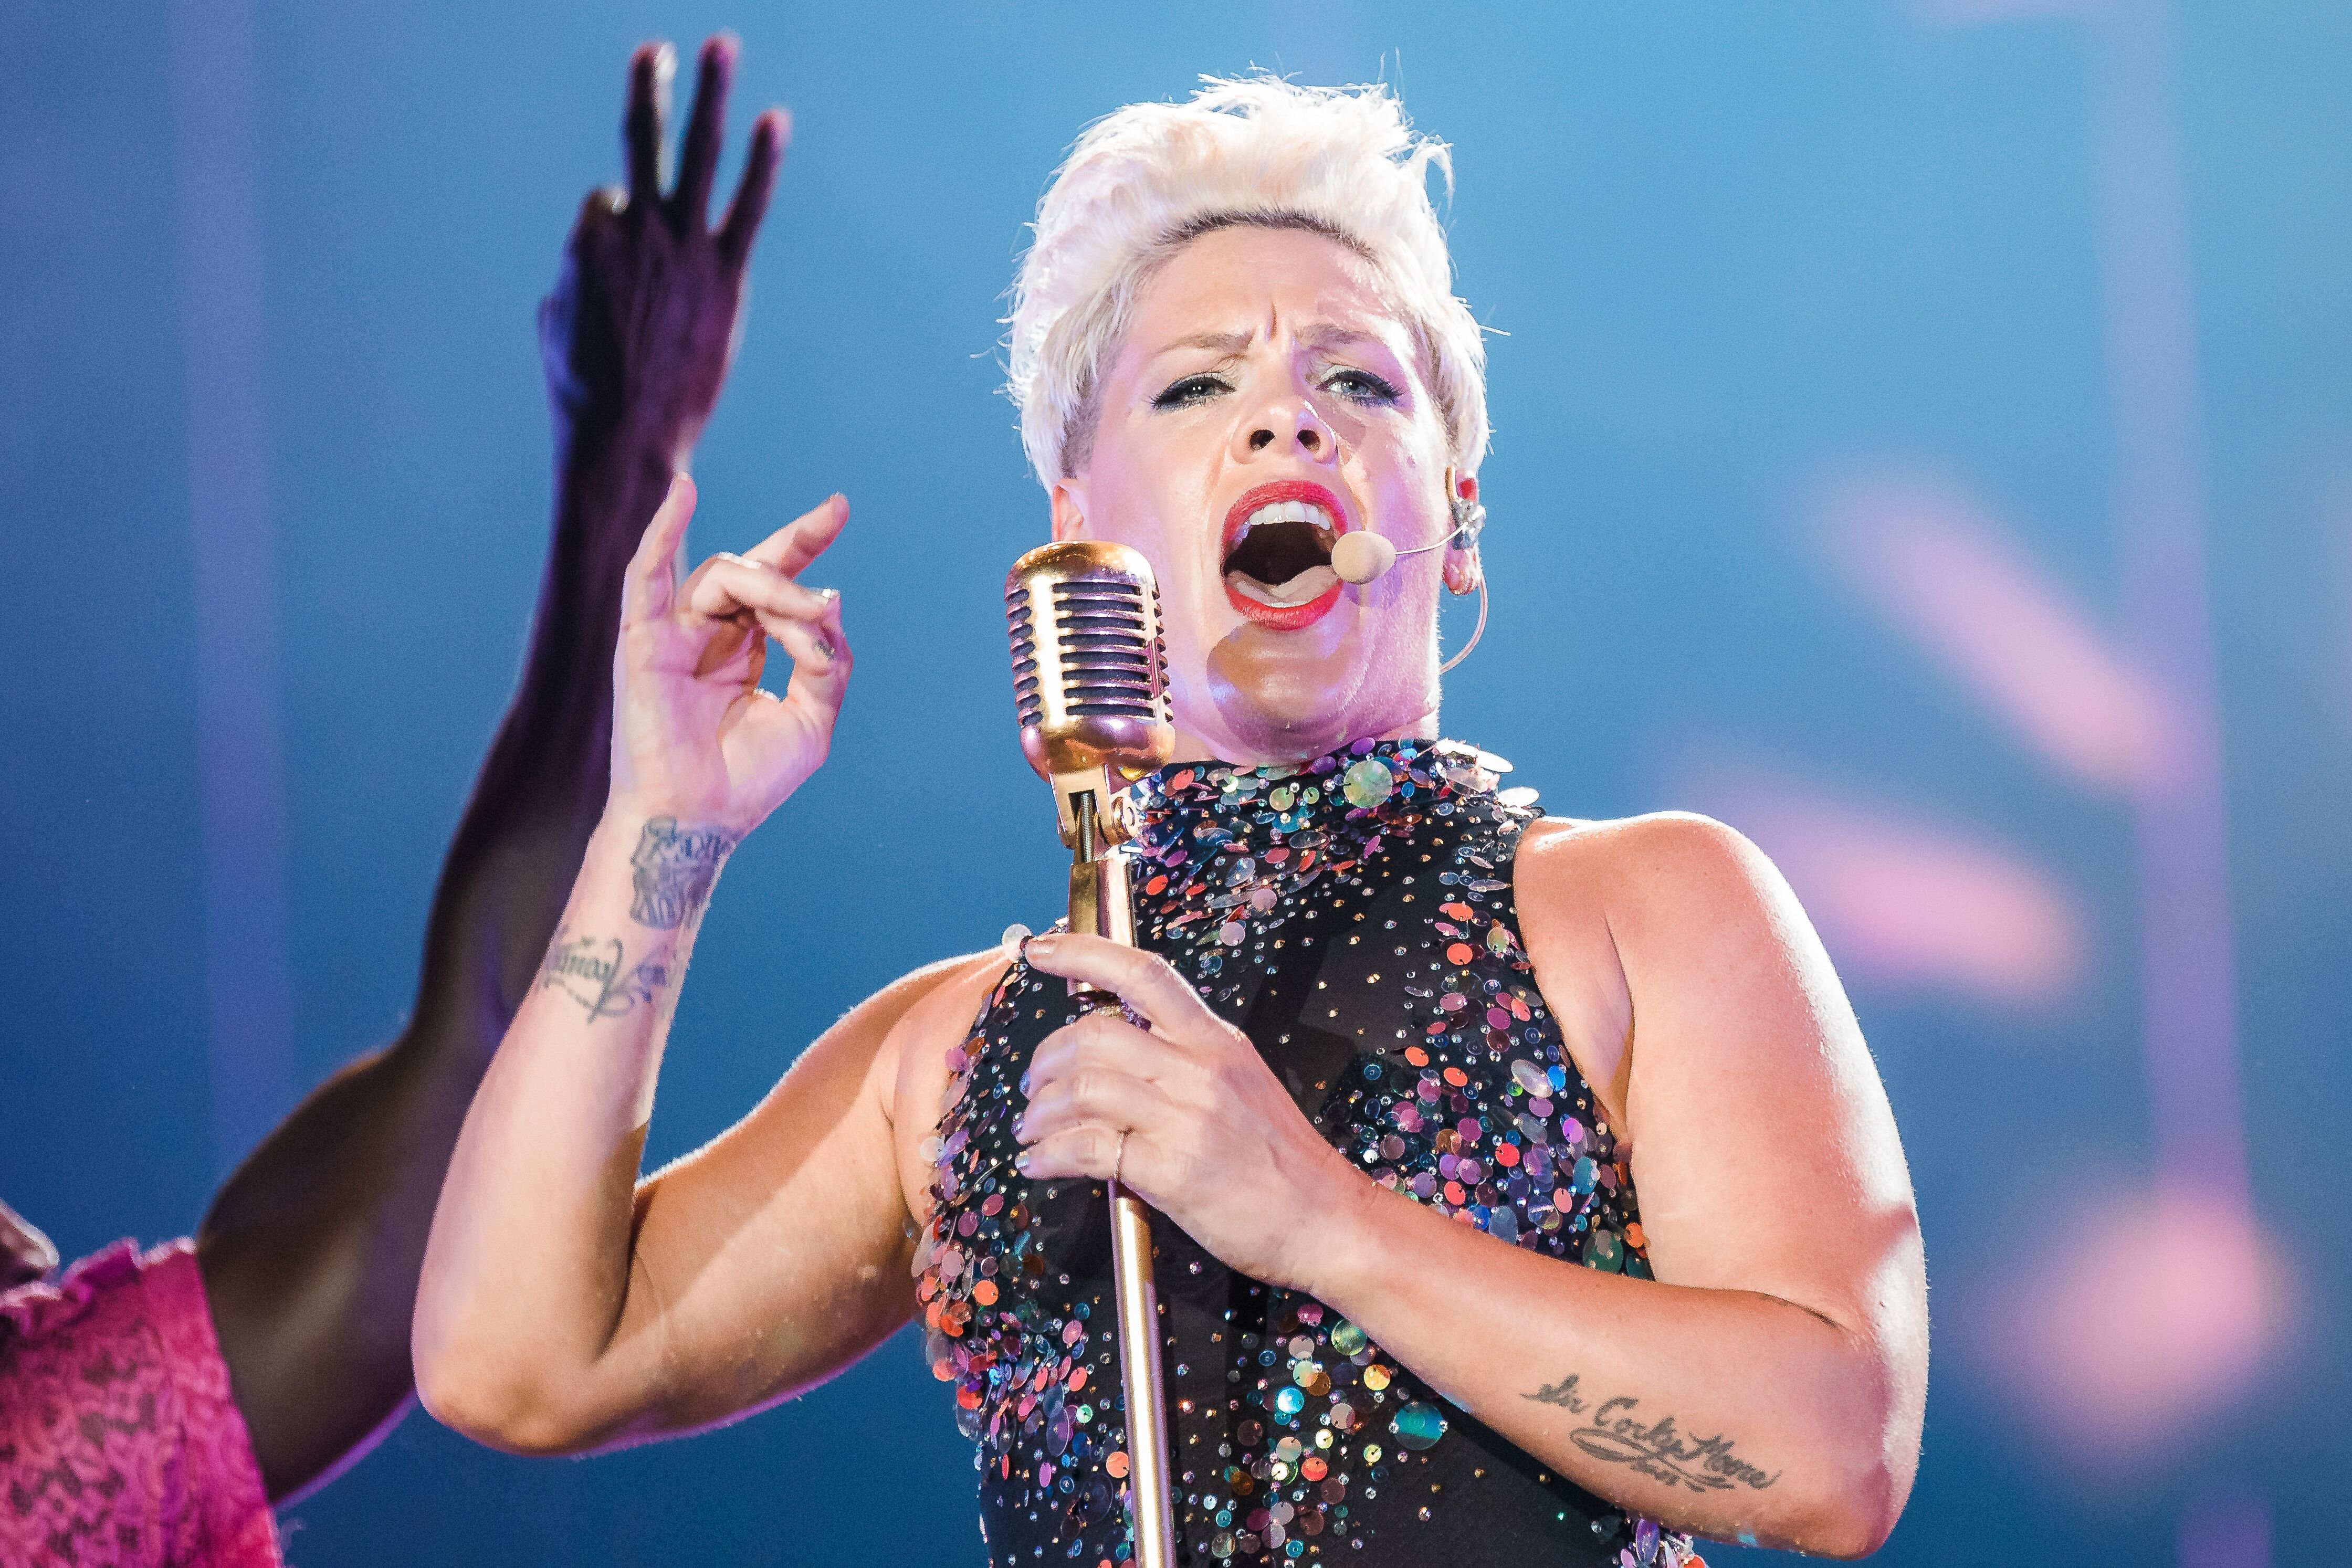 Pink performs live on stage during day 6 of Rock In Rio Music Festival at Cidade do Rock on October 5, 2019 in Rio de Janeiro, Brazil. | Source: Getty Images